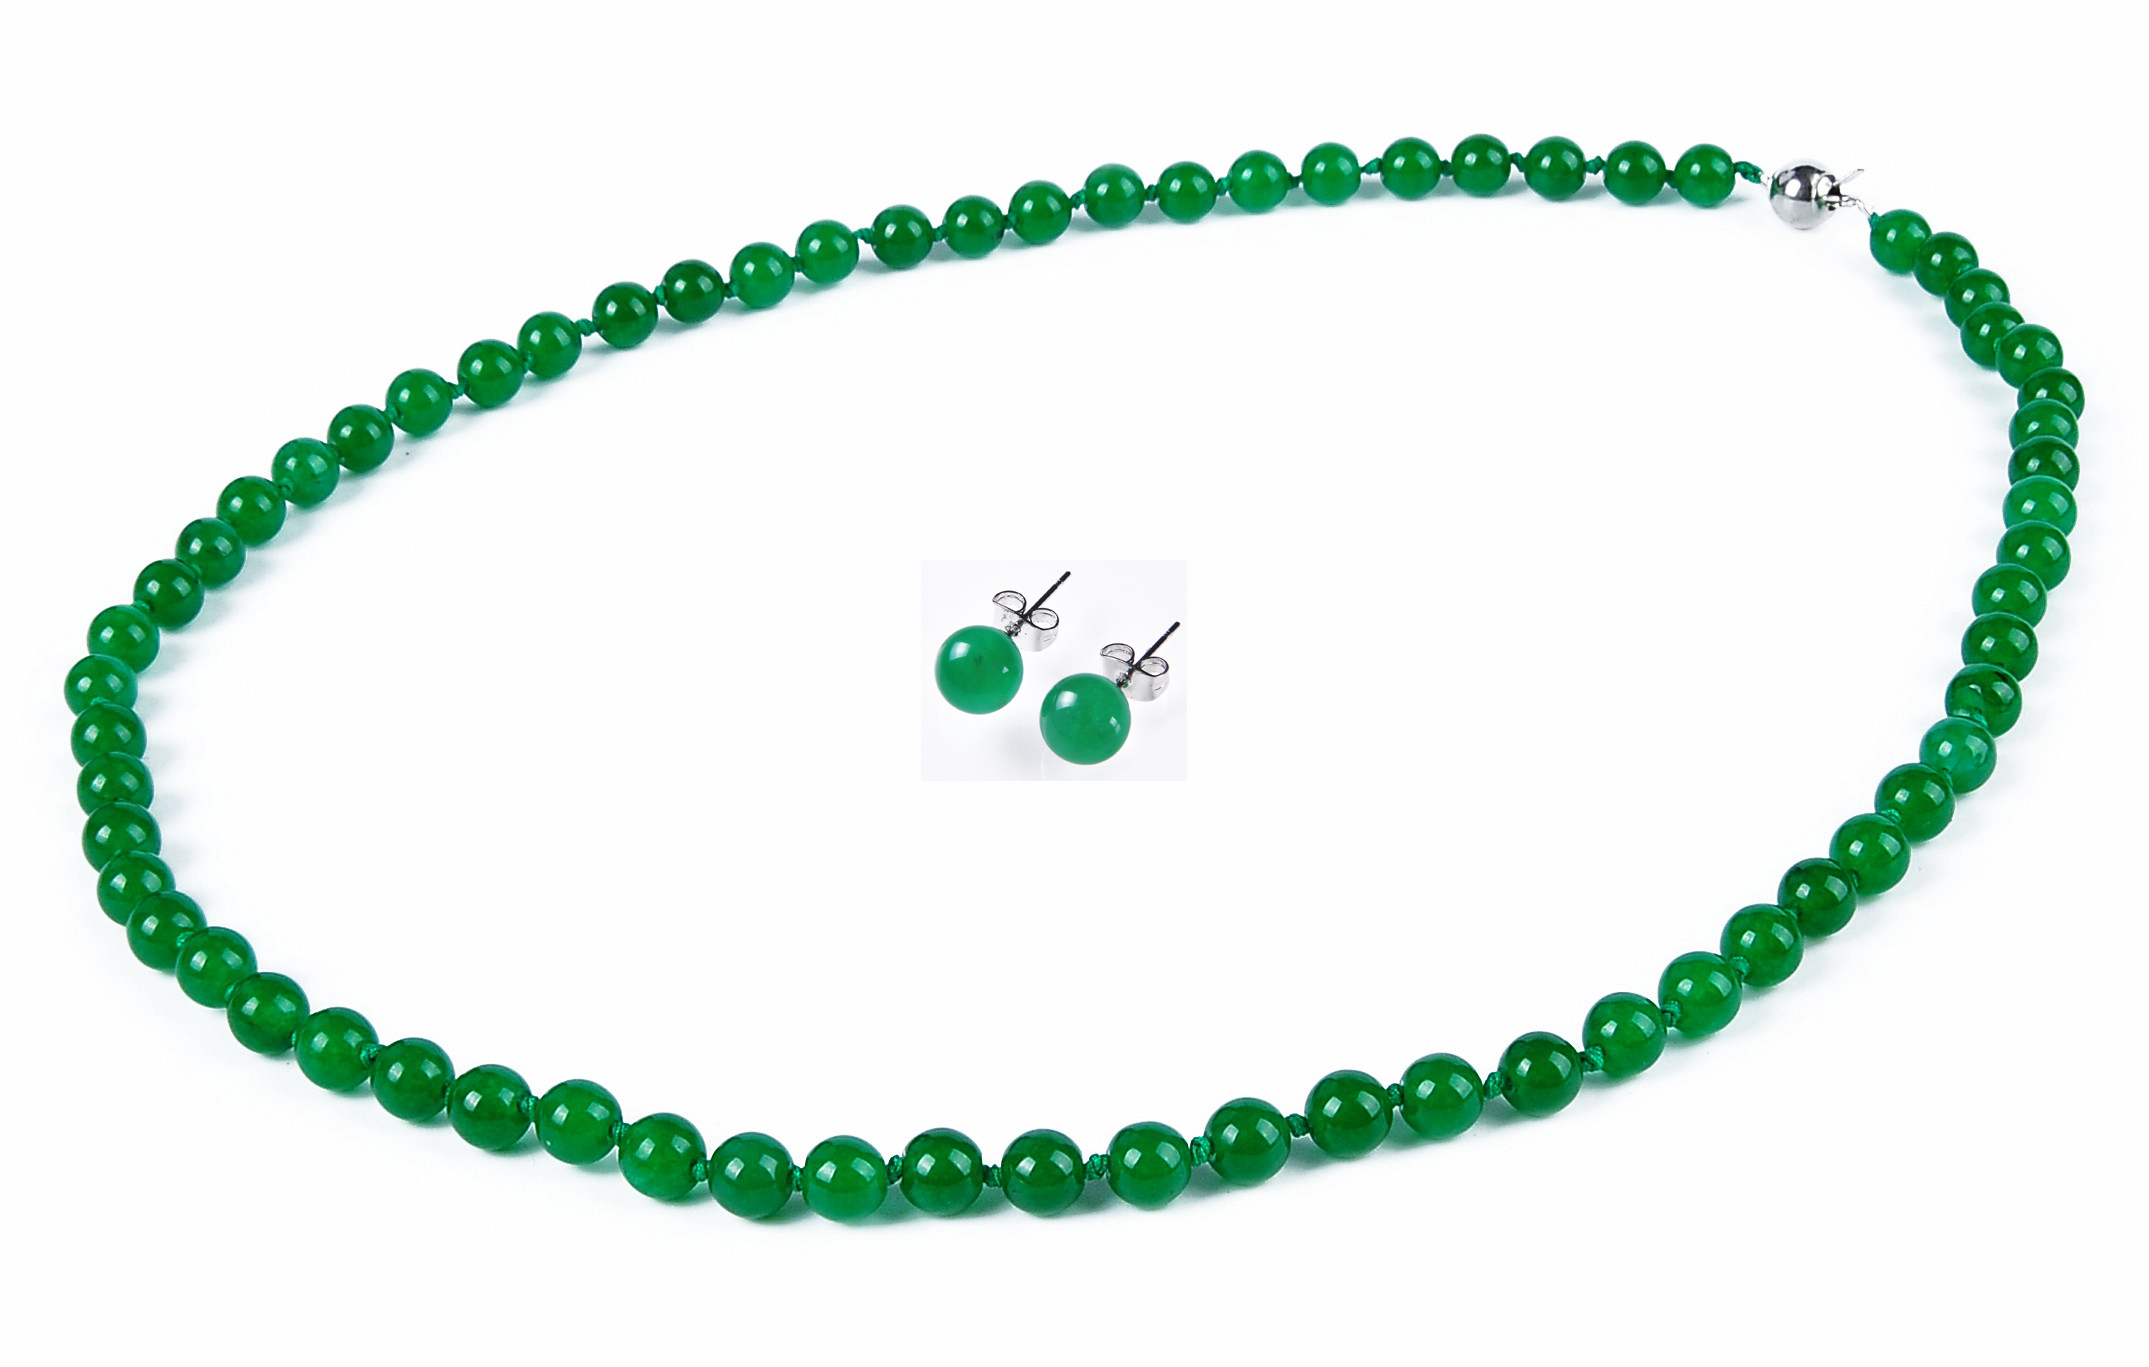 6mm Round Malay Green Jade Necklace Earring Set 19